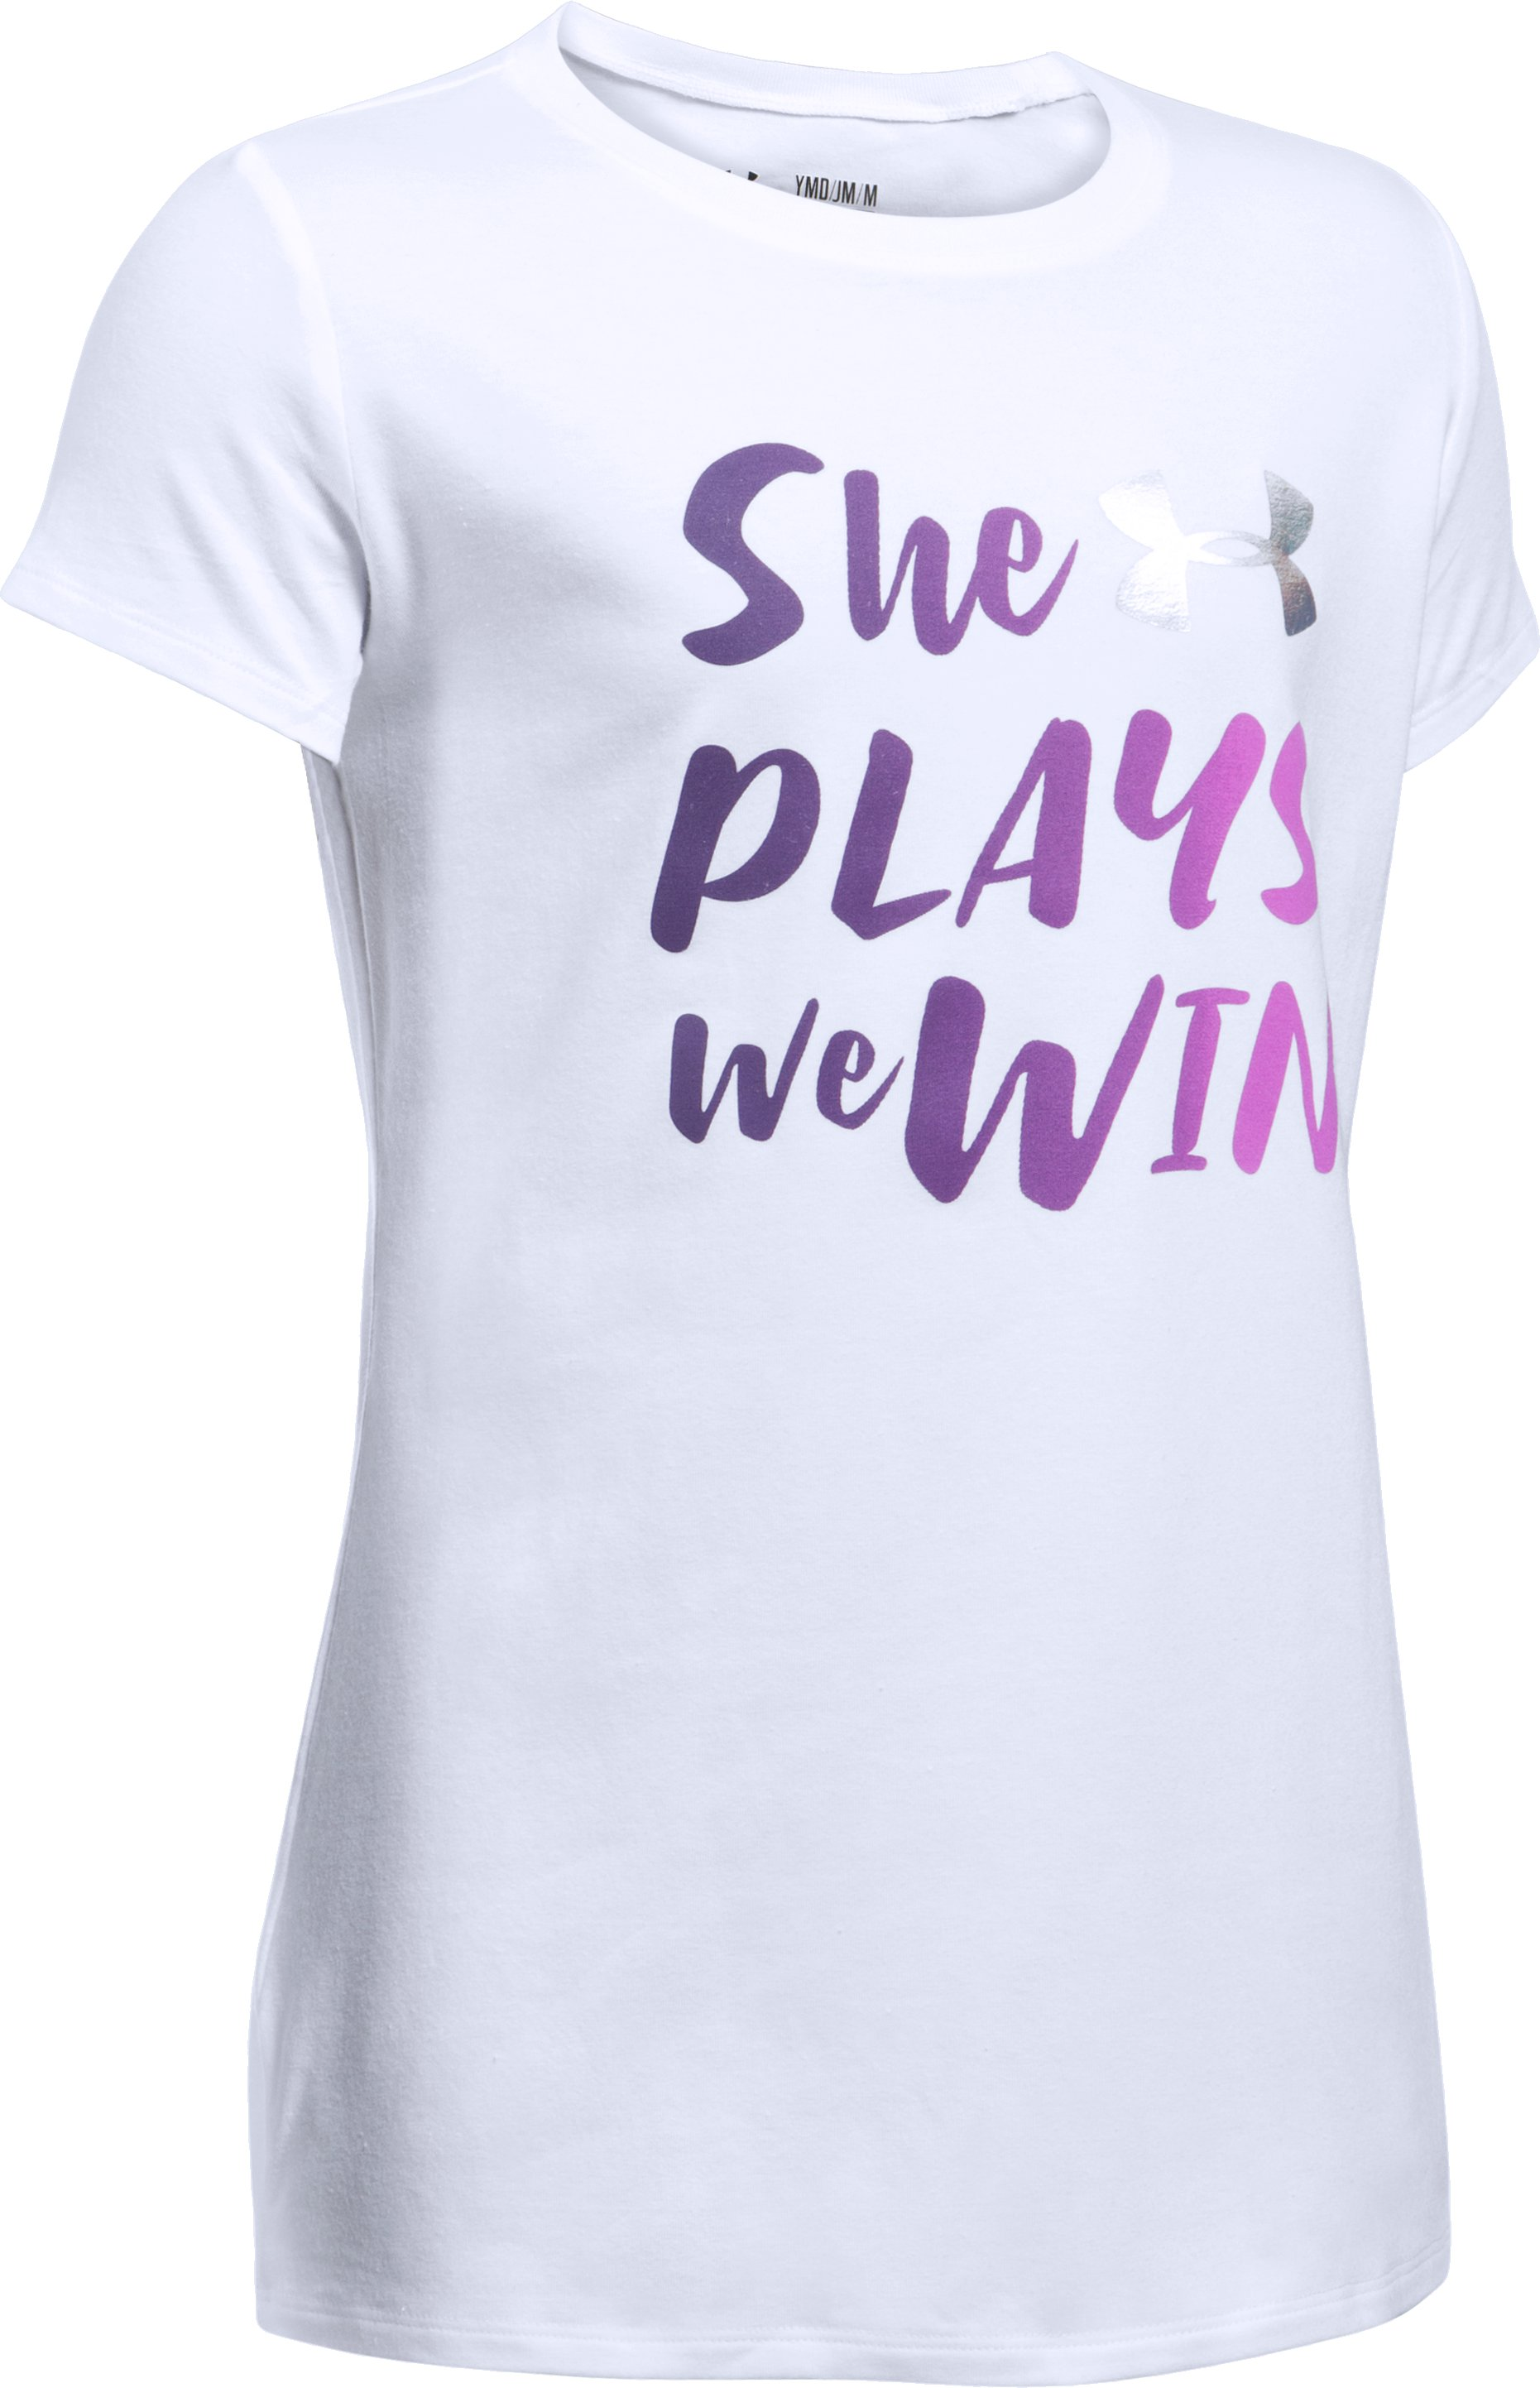 She Plays We Win T-Shirt, White,